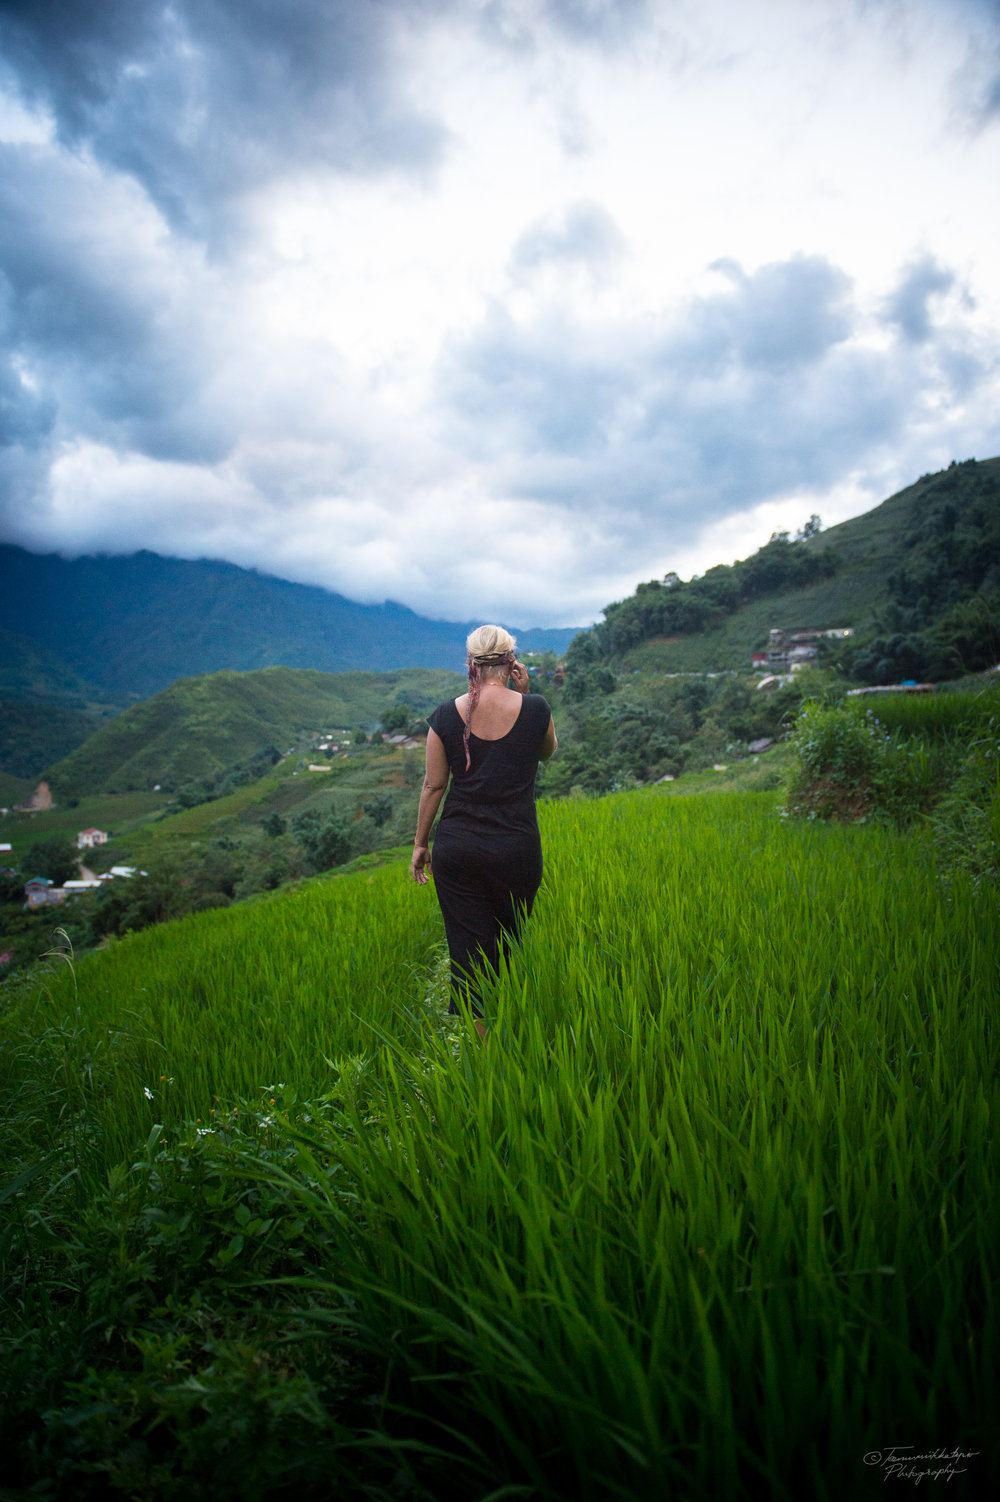 Balancing on the terraced rice fields.